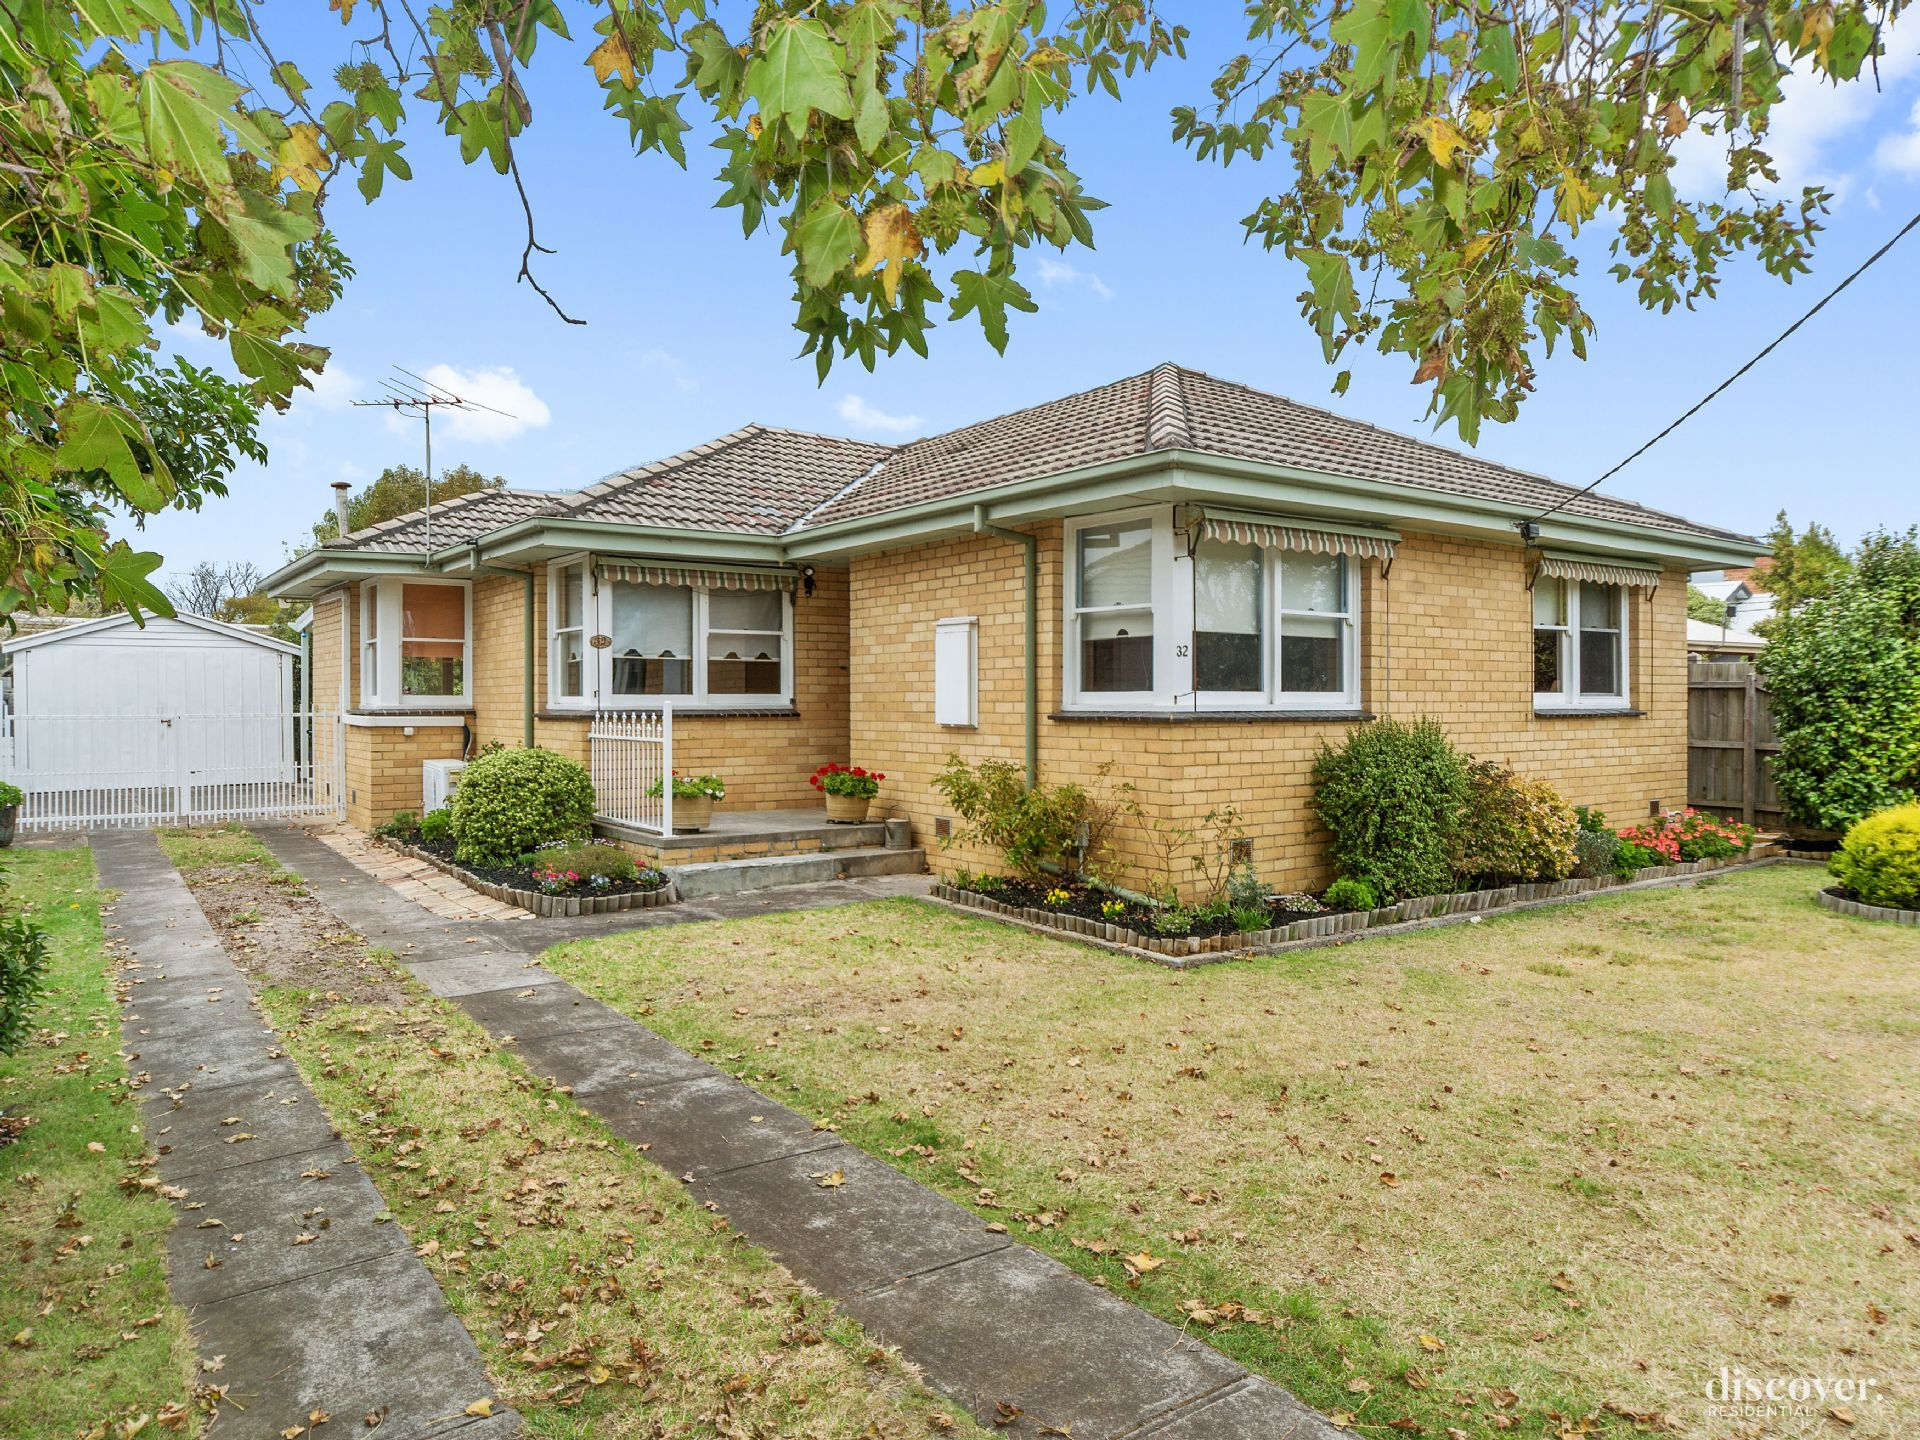 32 Railway Parade, SEAFORD, VIC, 3198 - Image